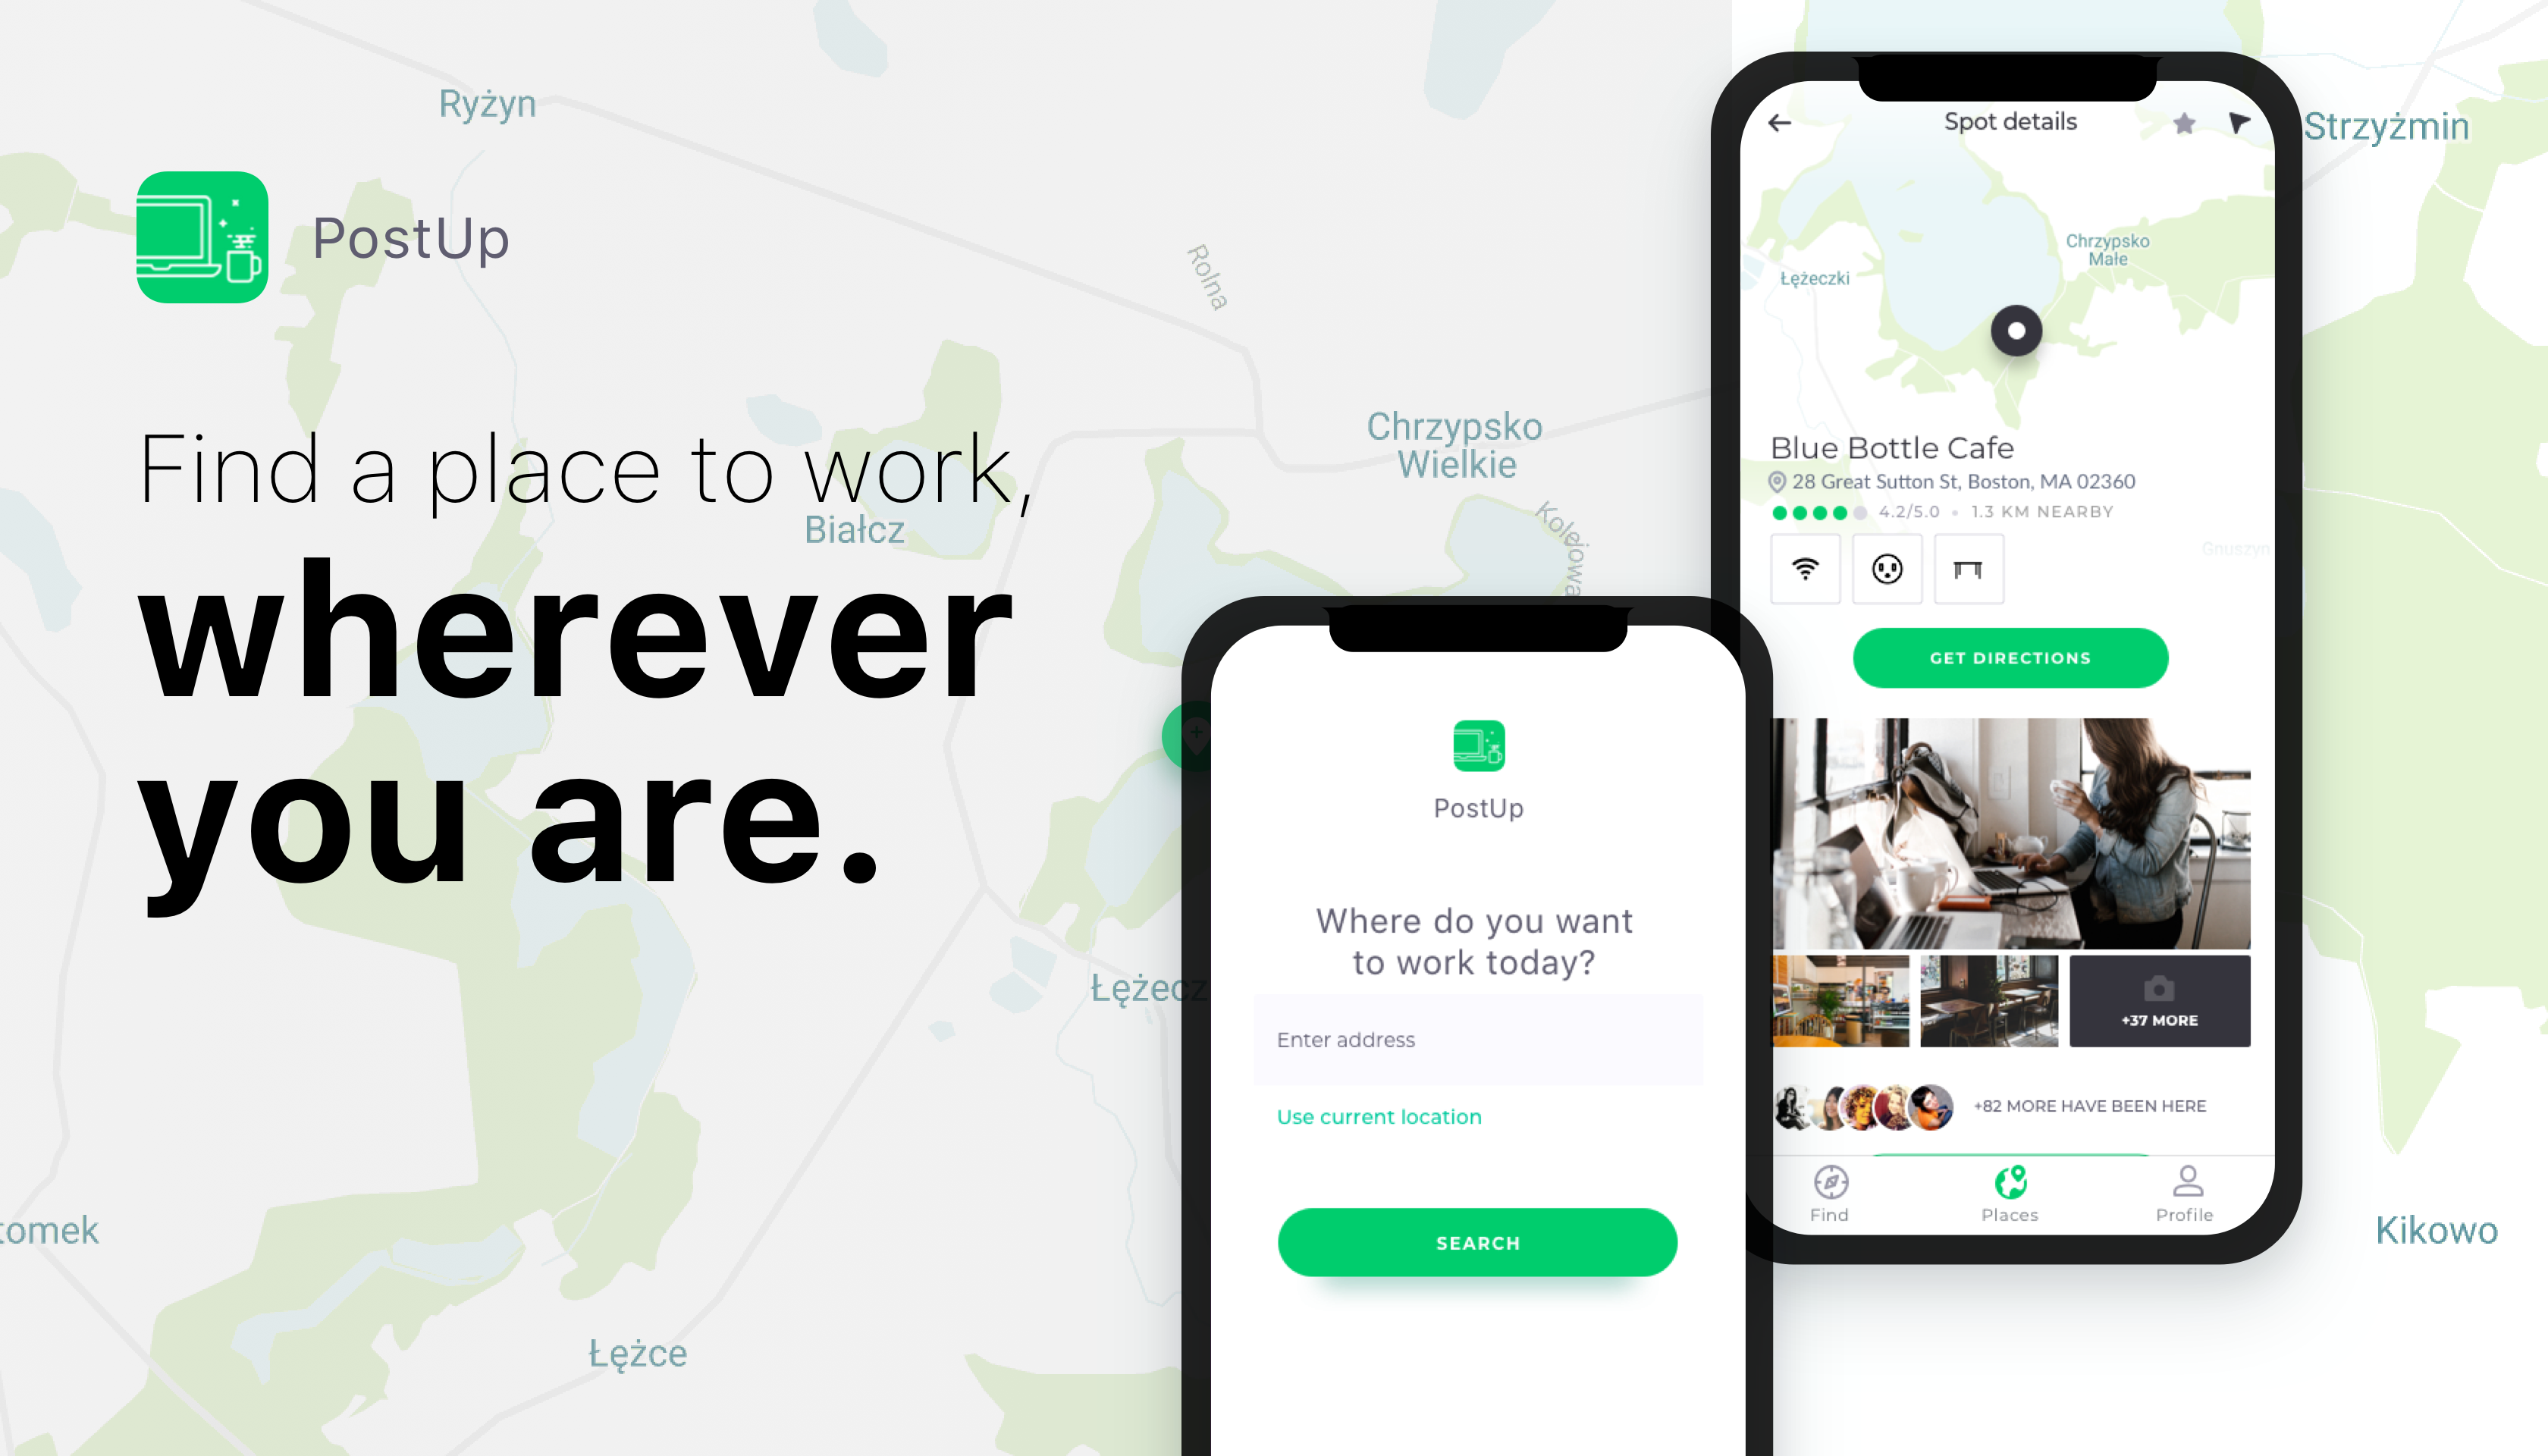 App design for finding a co-working space